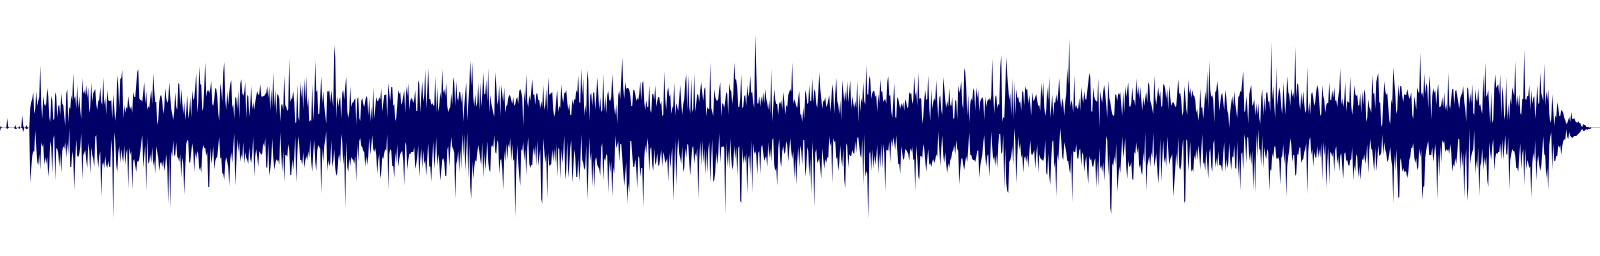 waveform of track #114121